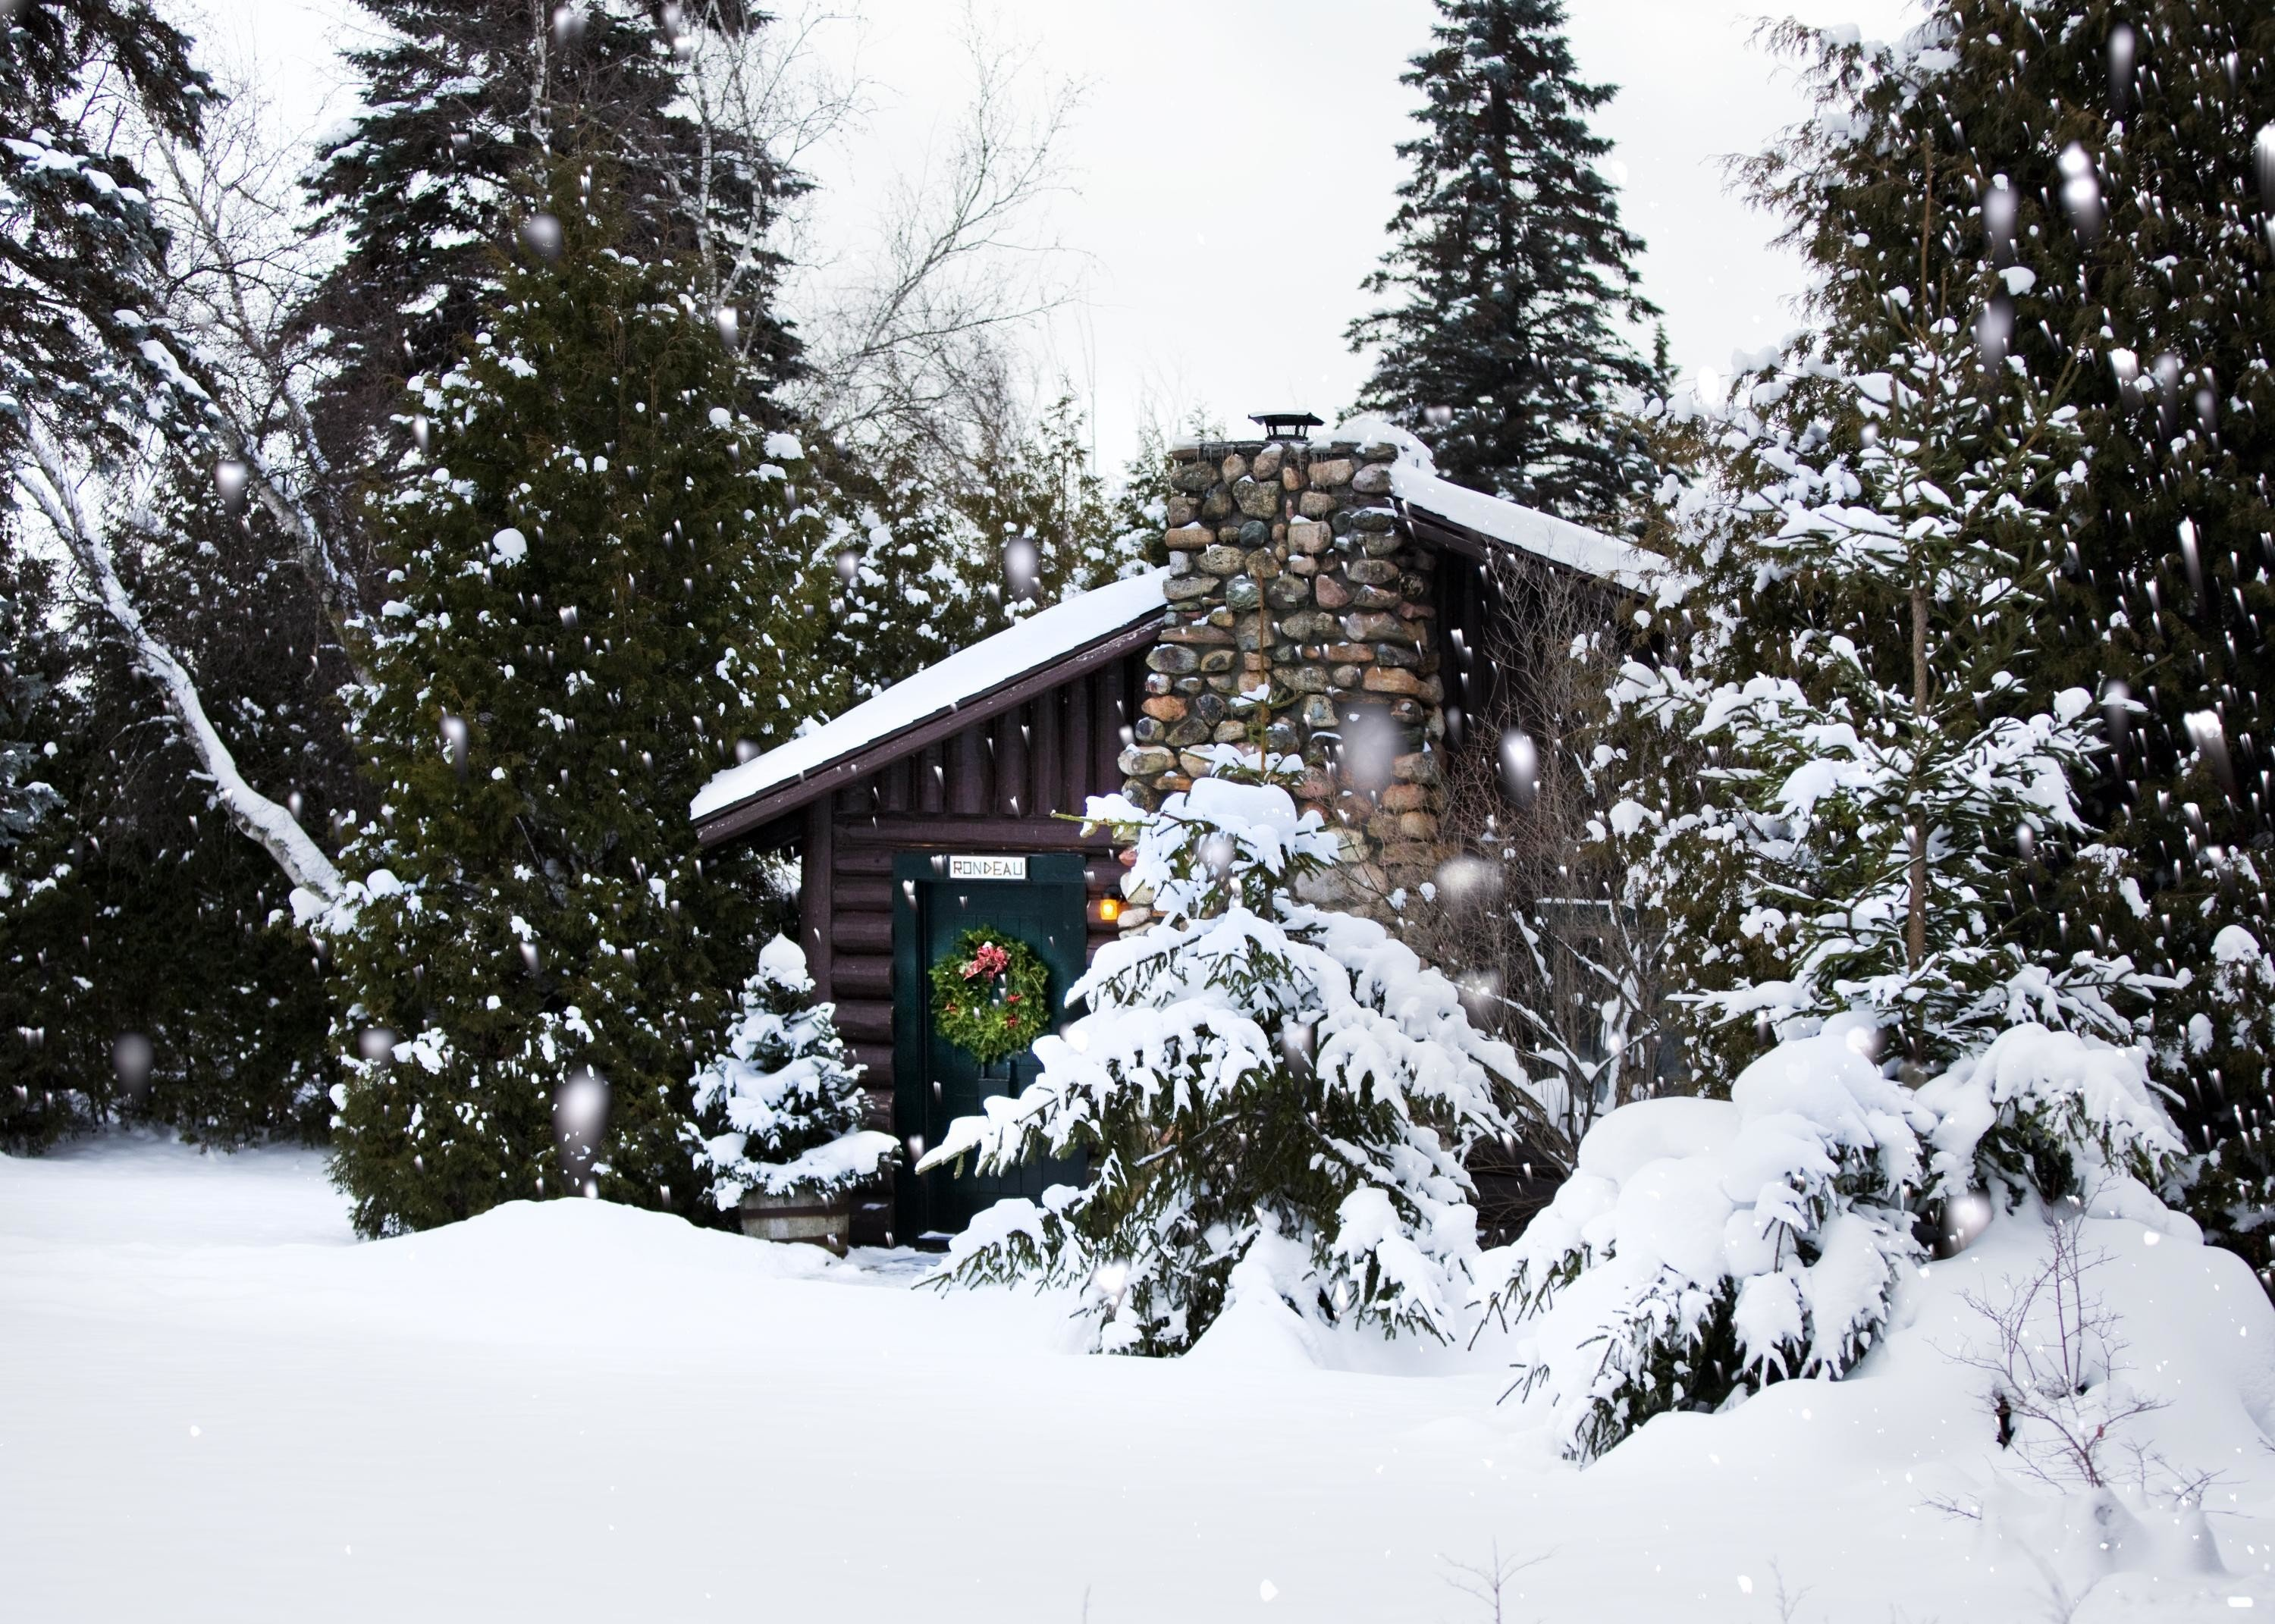 alpine skiing East Coast USA tree Trip Ideas outdoor snow Winter weather geological phenomenon season footwear woody plant house Forest slope skiing wooded